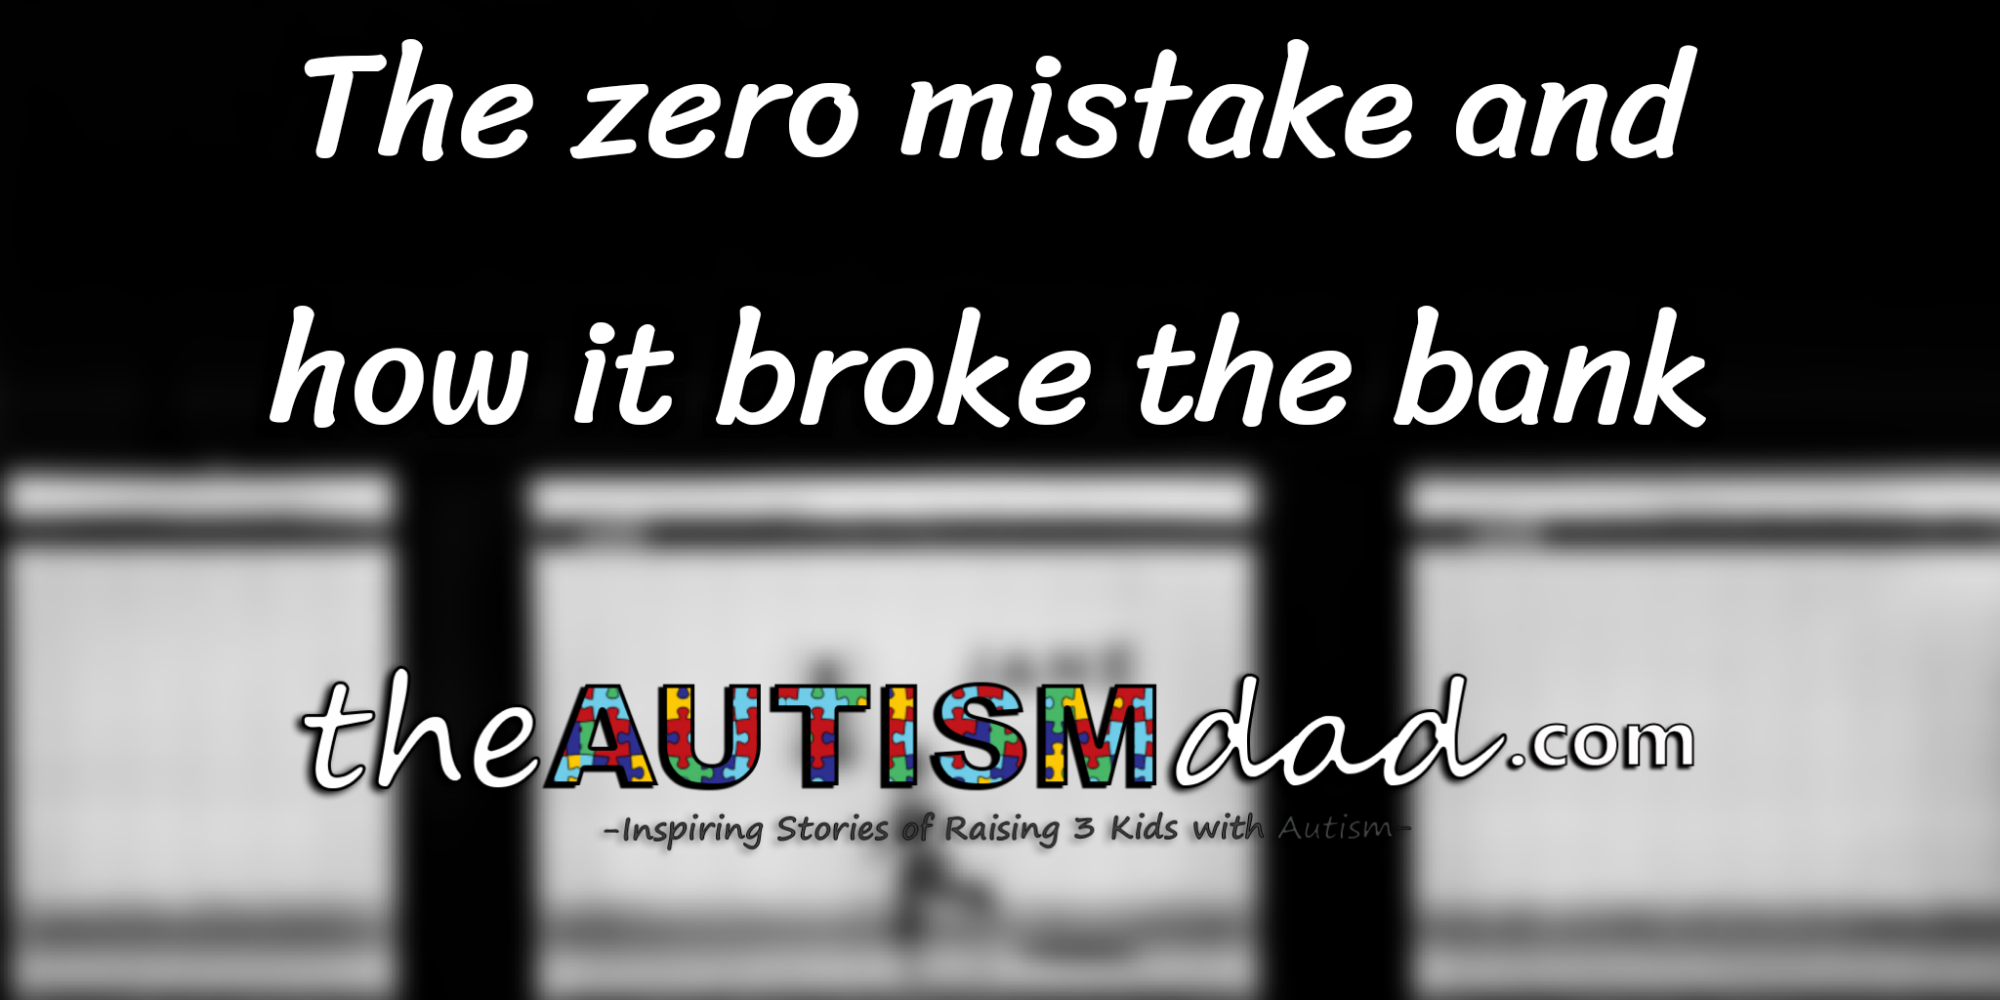 The zero mistake and how it broke the bank